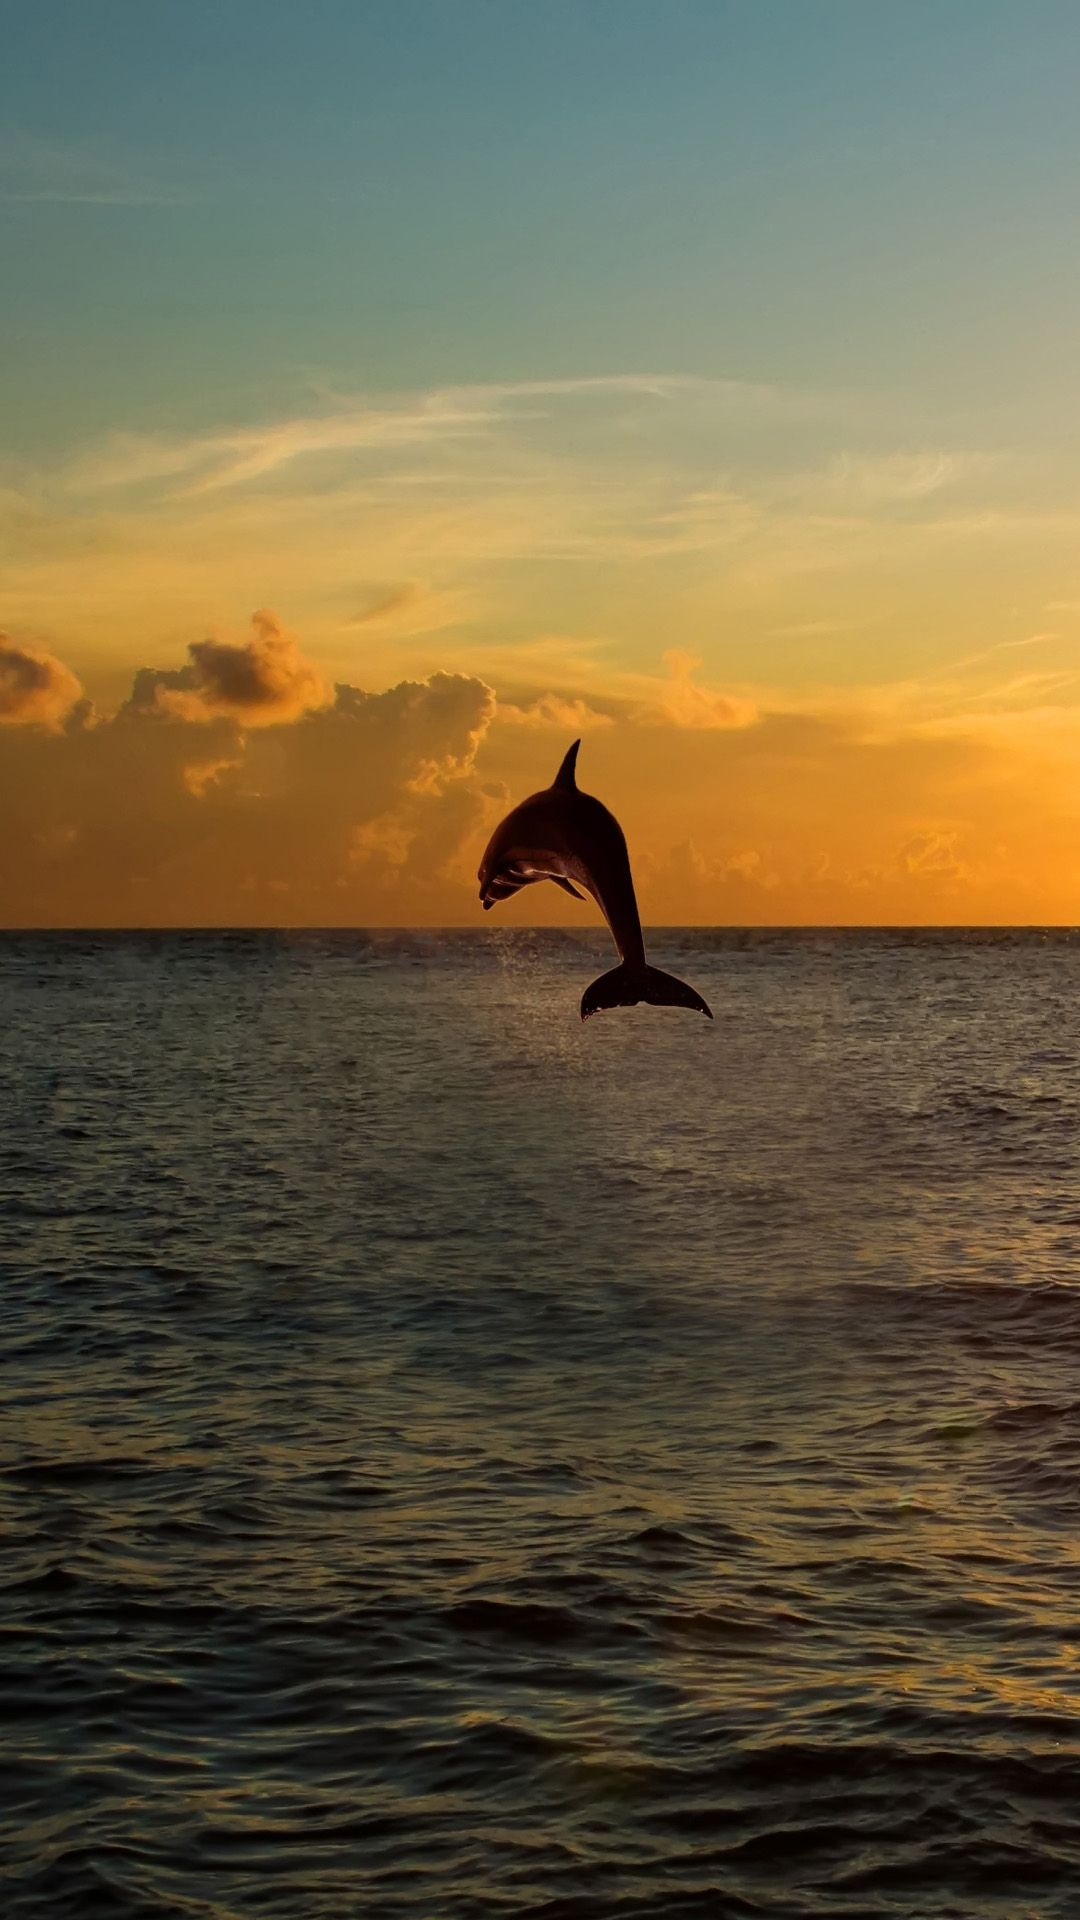 Twilight Jumping Dolphins iPhone 6 plus wallpaper Hd